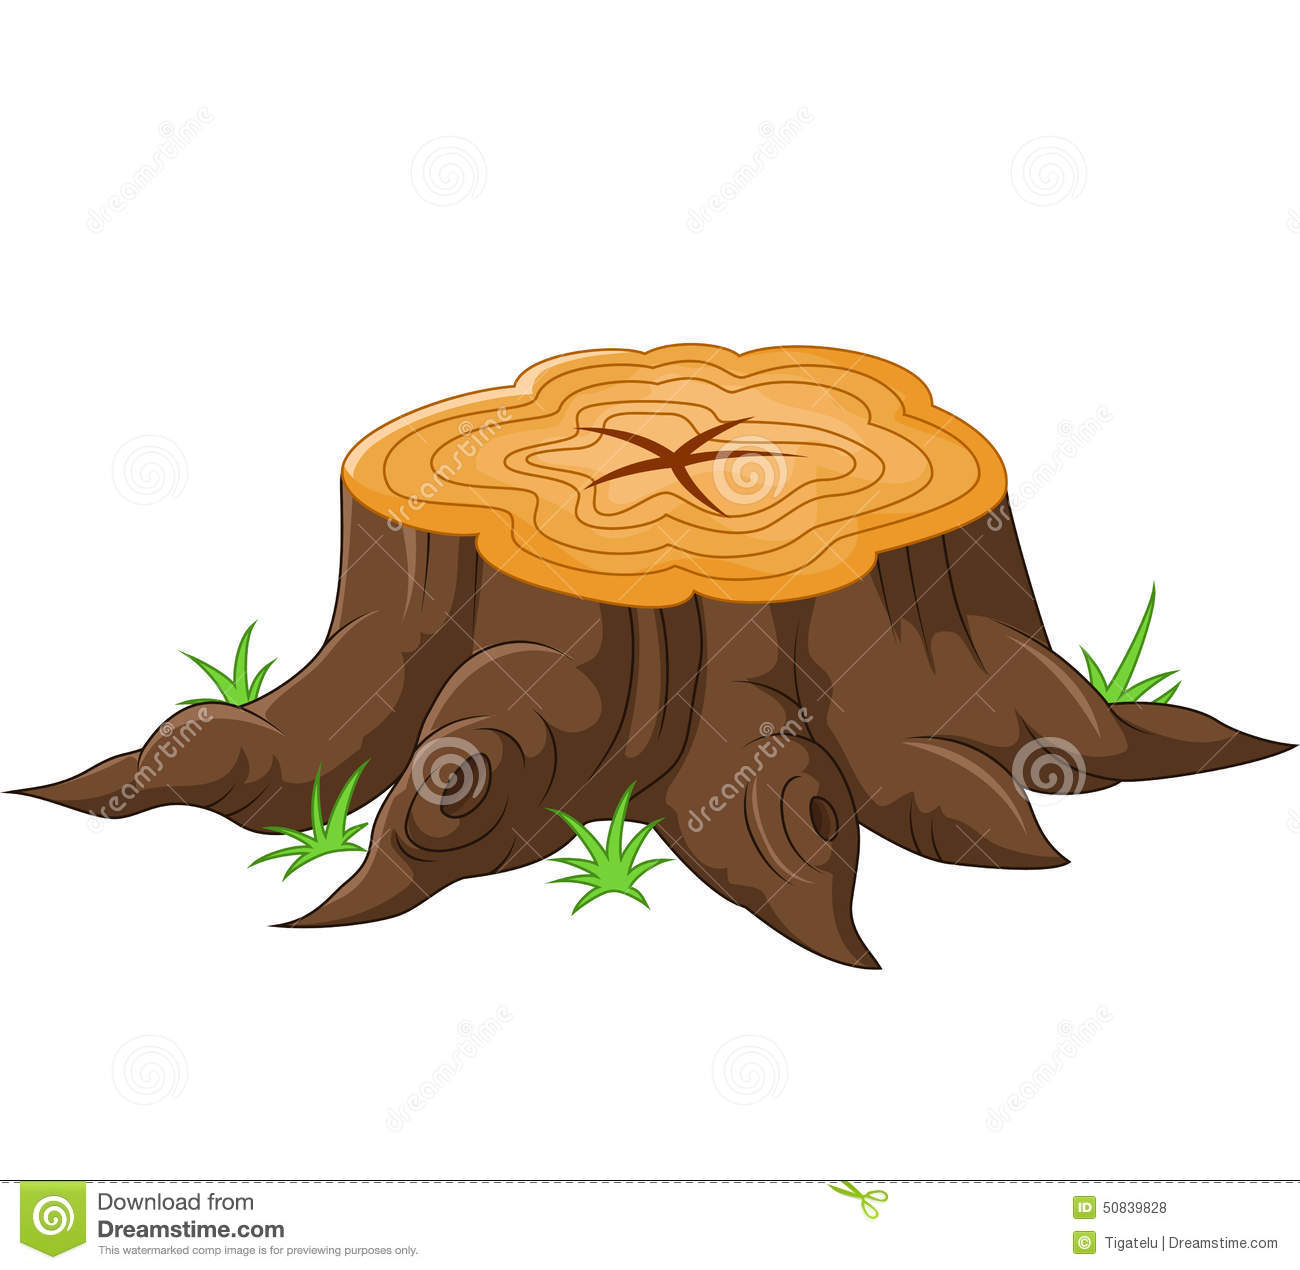 how to draw a tree stump